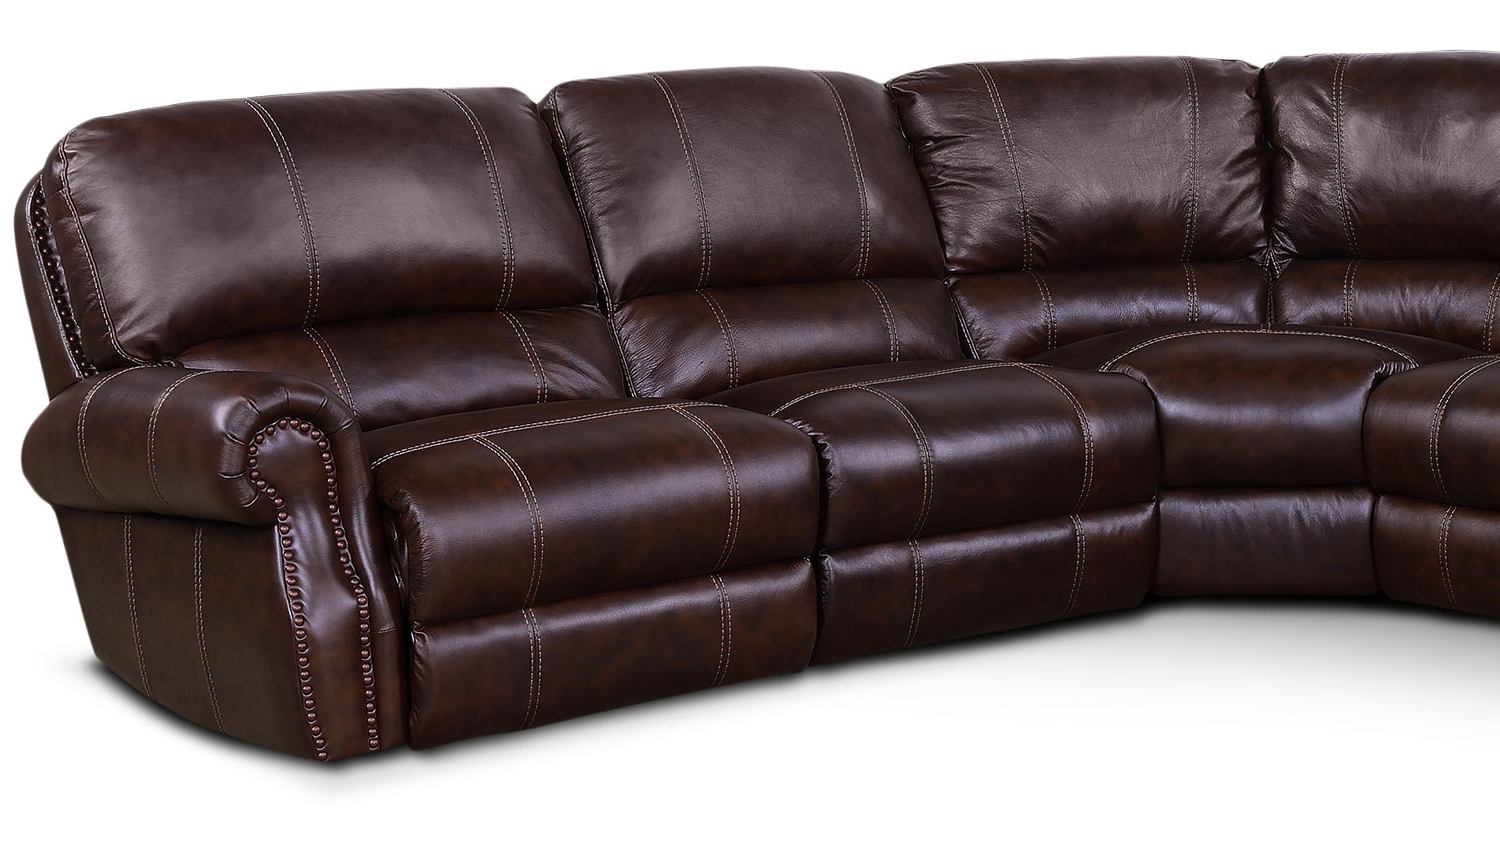 Widely Used Norfolk Chocolate 3 Piece Sectionals With Laf Chaise With Regard To Dartmouth 6 Piece Power Reclining Sectional With 2 Reclining Seats (View 17 of 20)